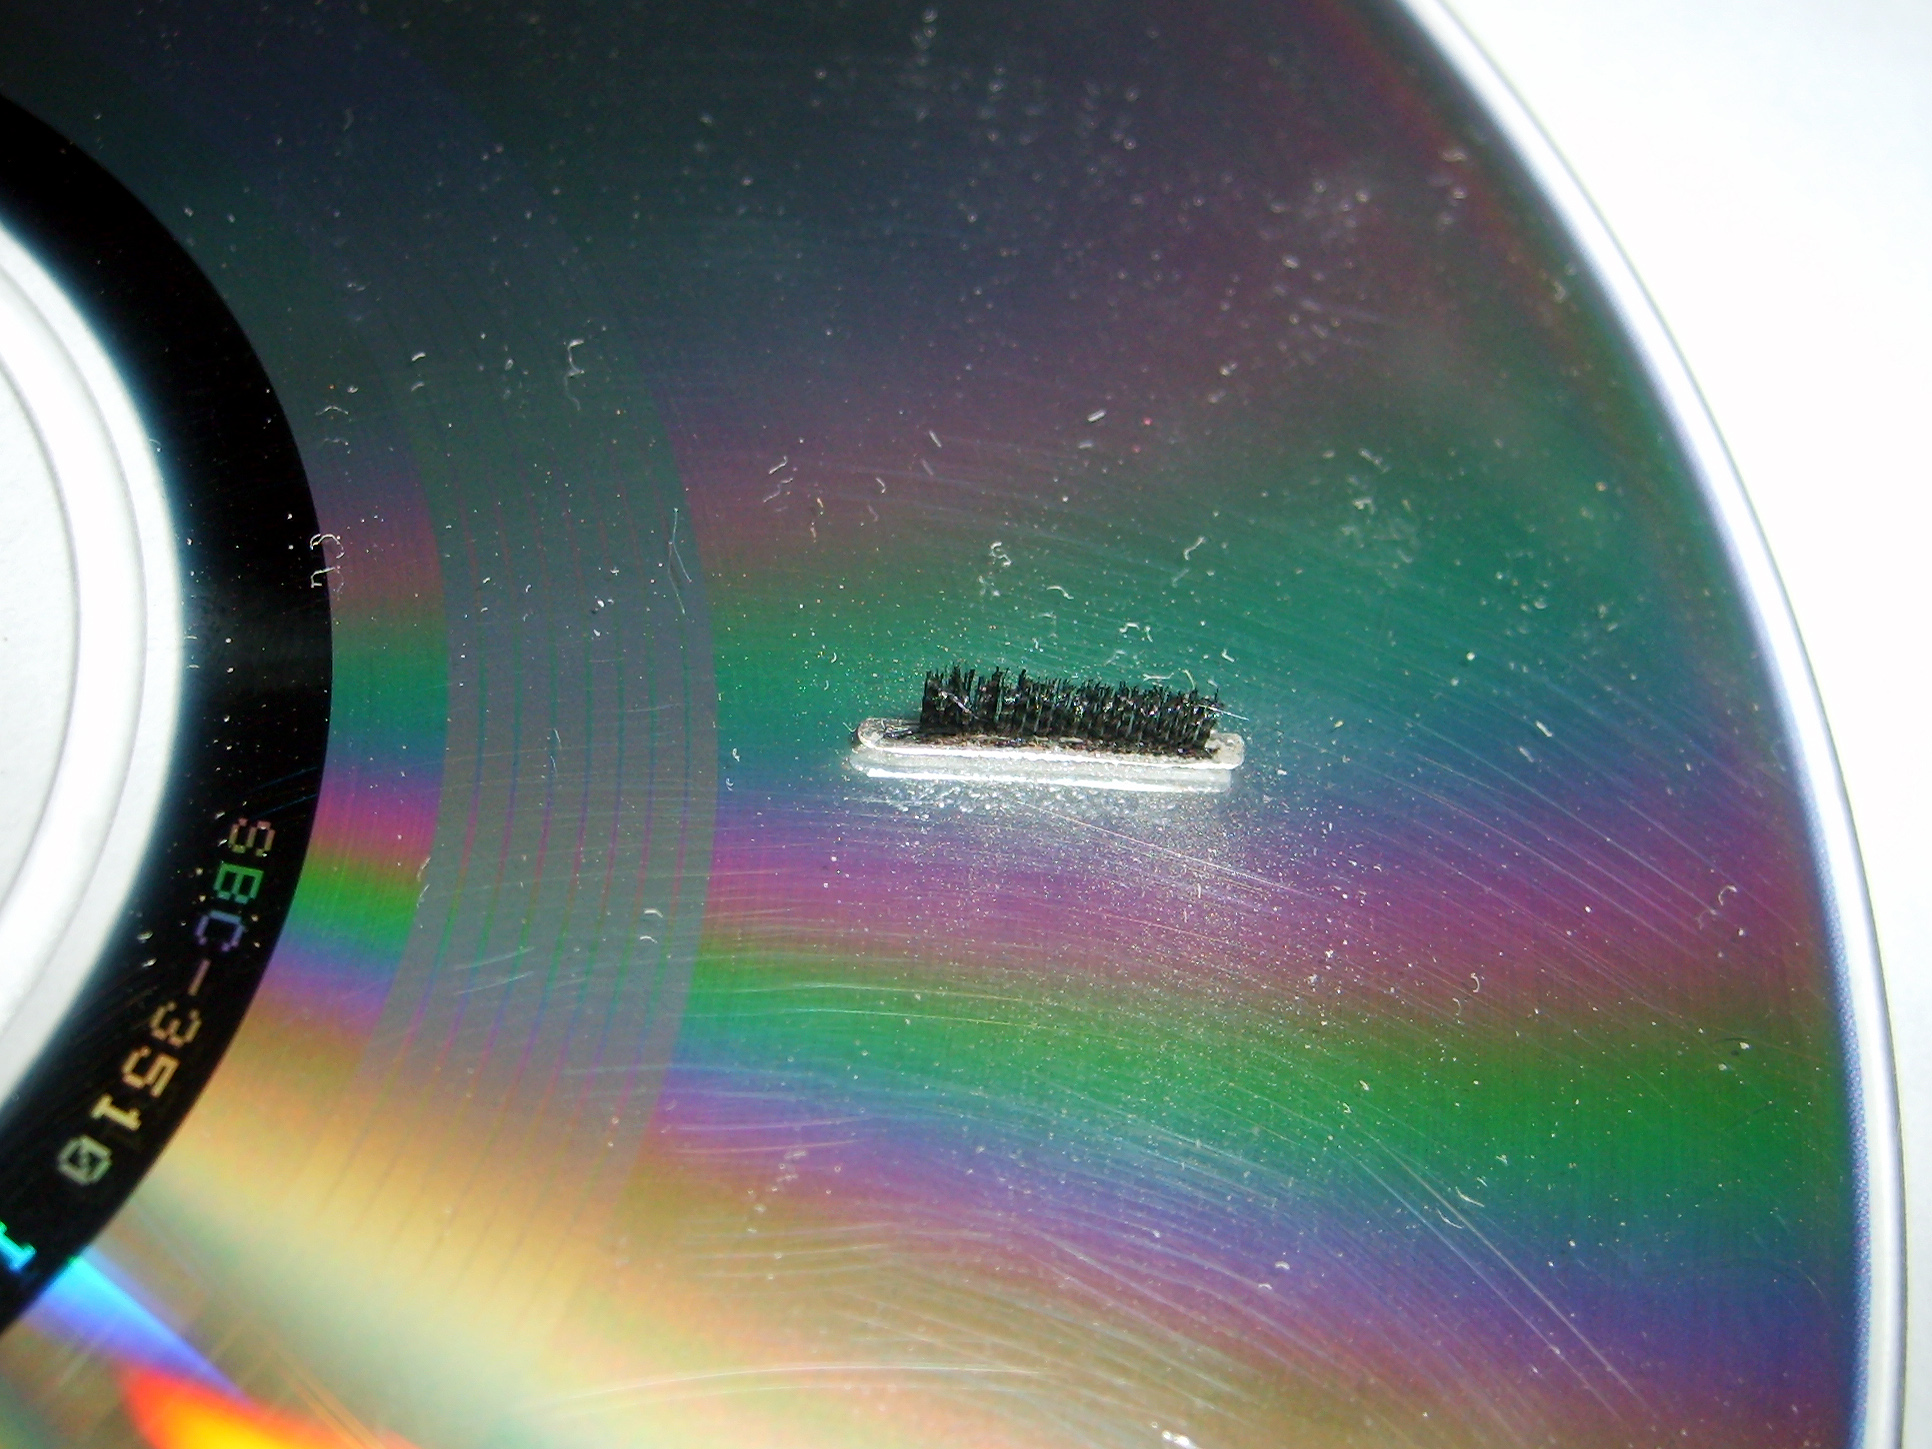 CD_Lens_Cleaner.jpg